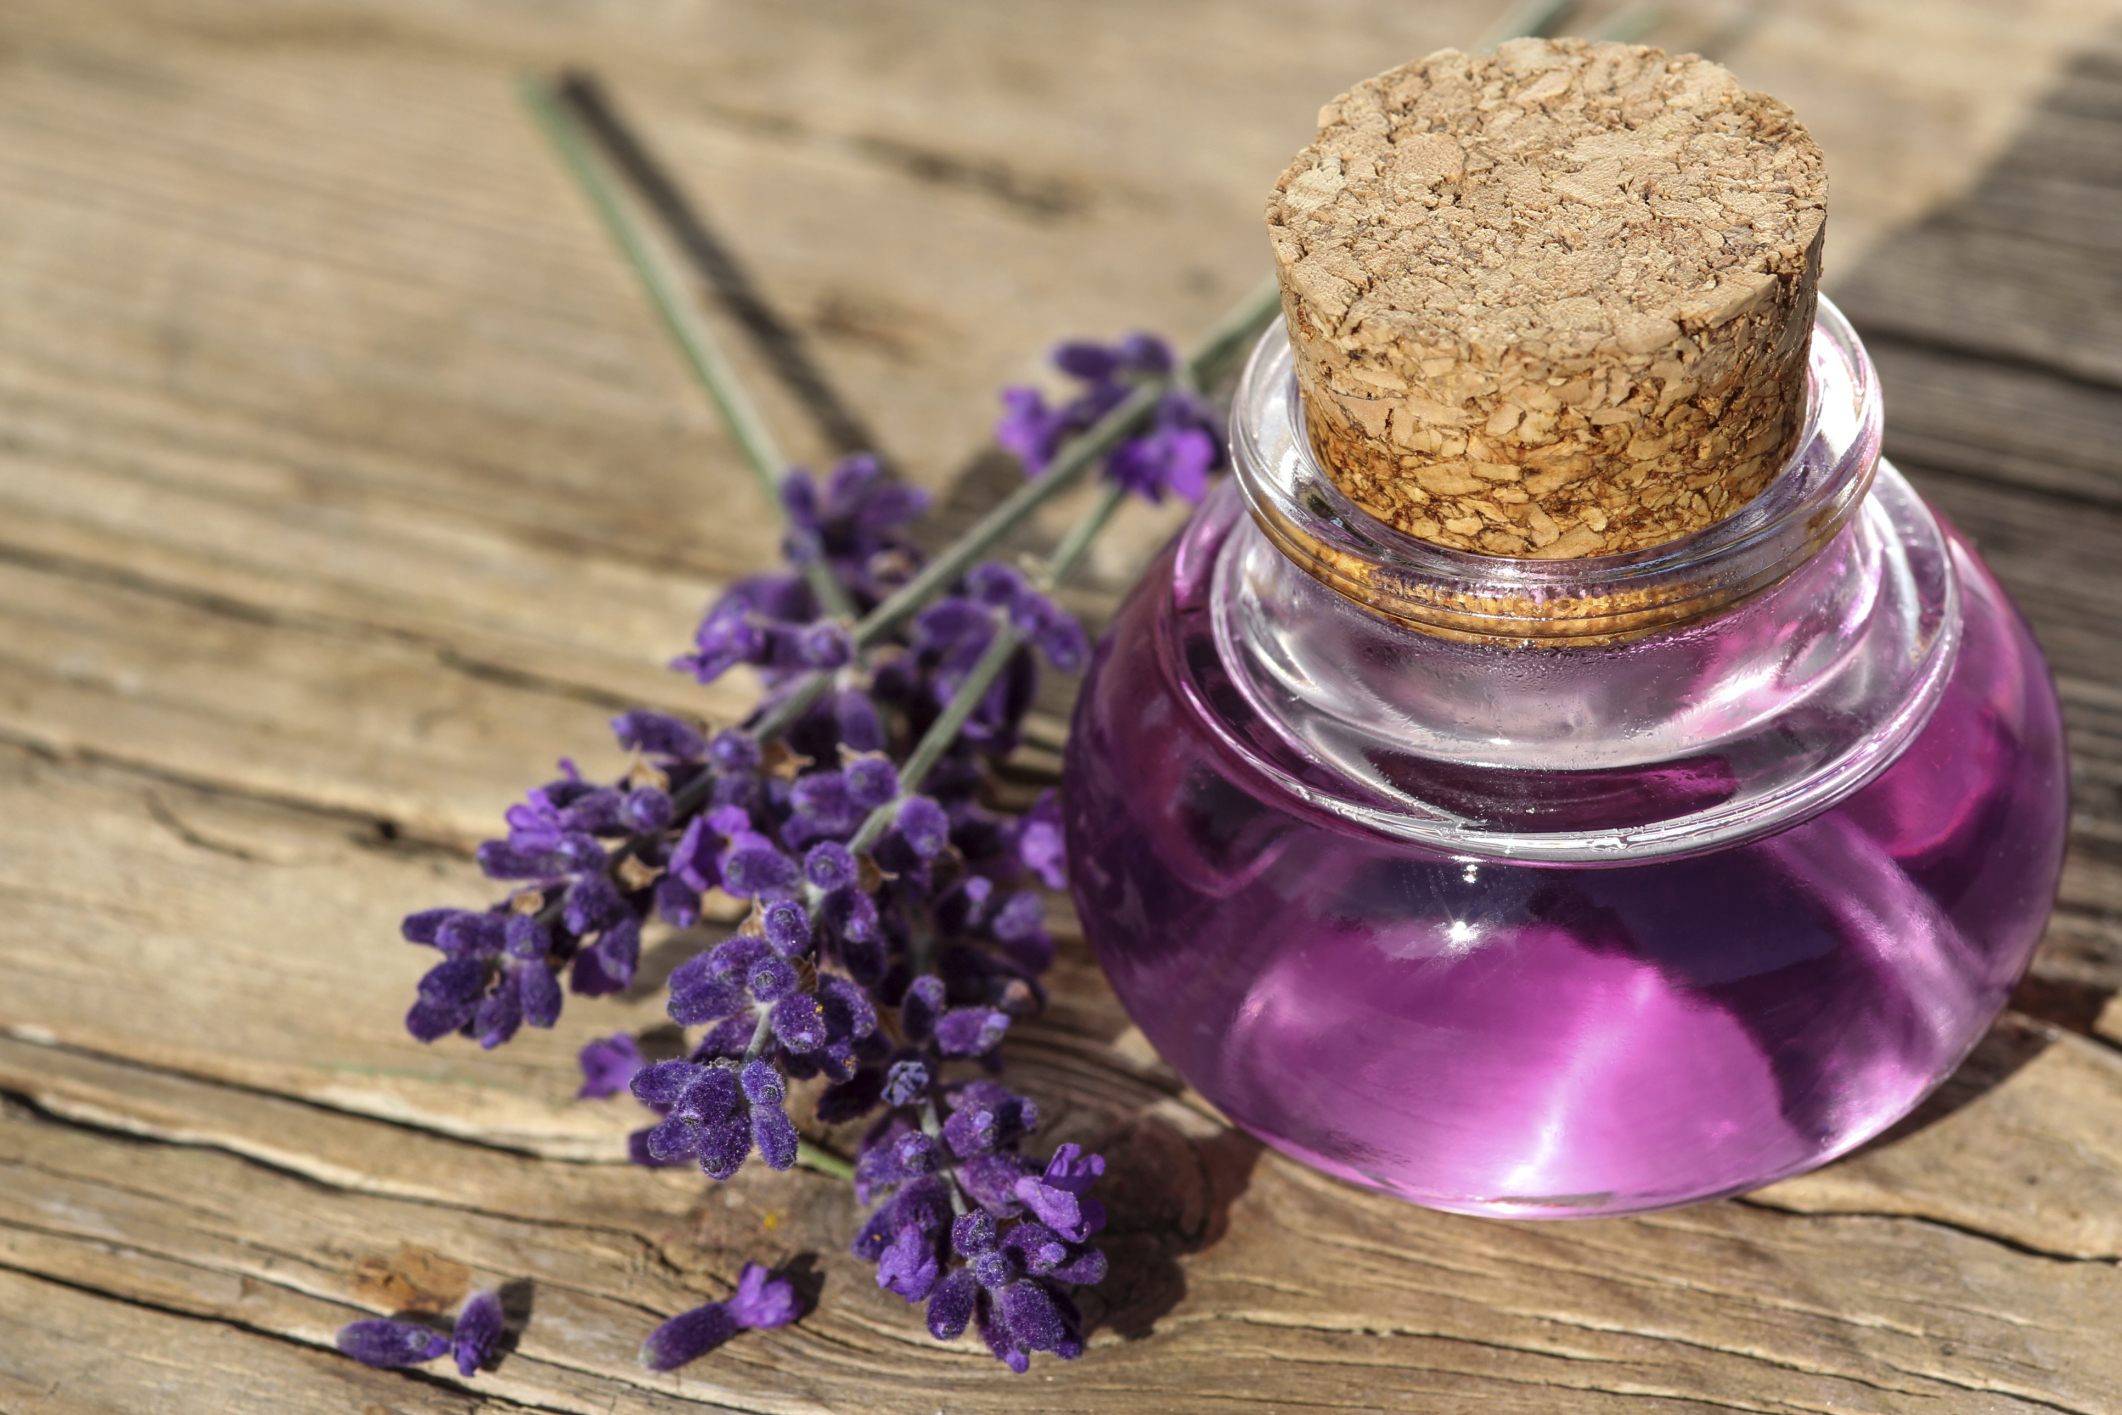 Lavender oil is an essential oil obtained by distillation from the flower spikes of certain species of lavender. The health benefits of lavender essential oil include its ability to eliminate nervous tension, relieve pain, disinfect the scalp and skin, enhance blood circulation and treat respiratory problems.